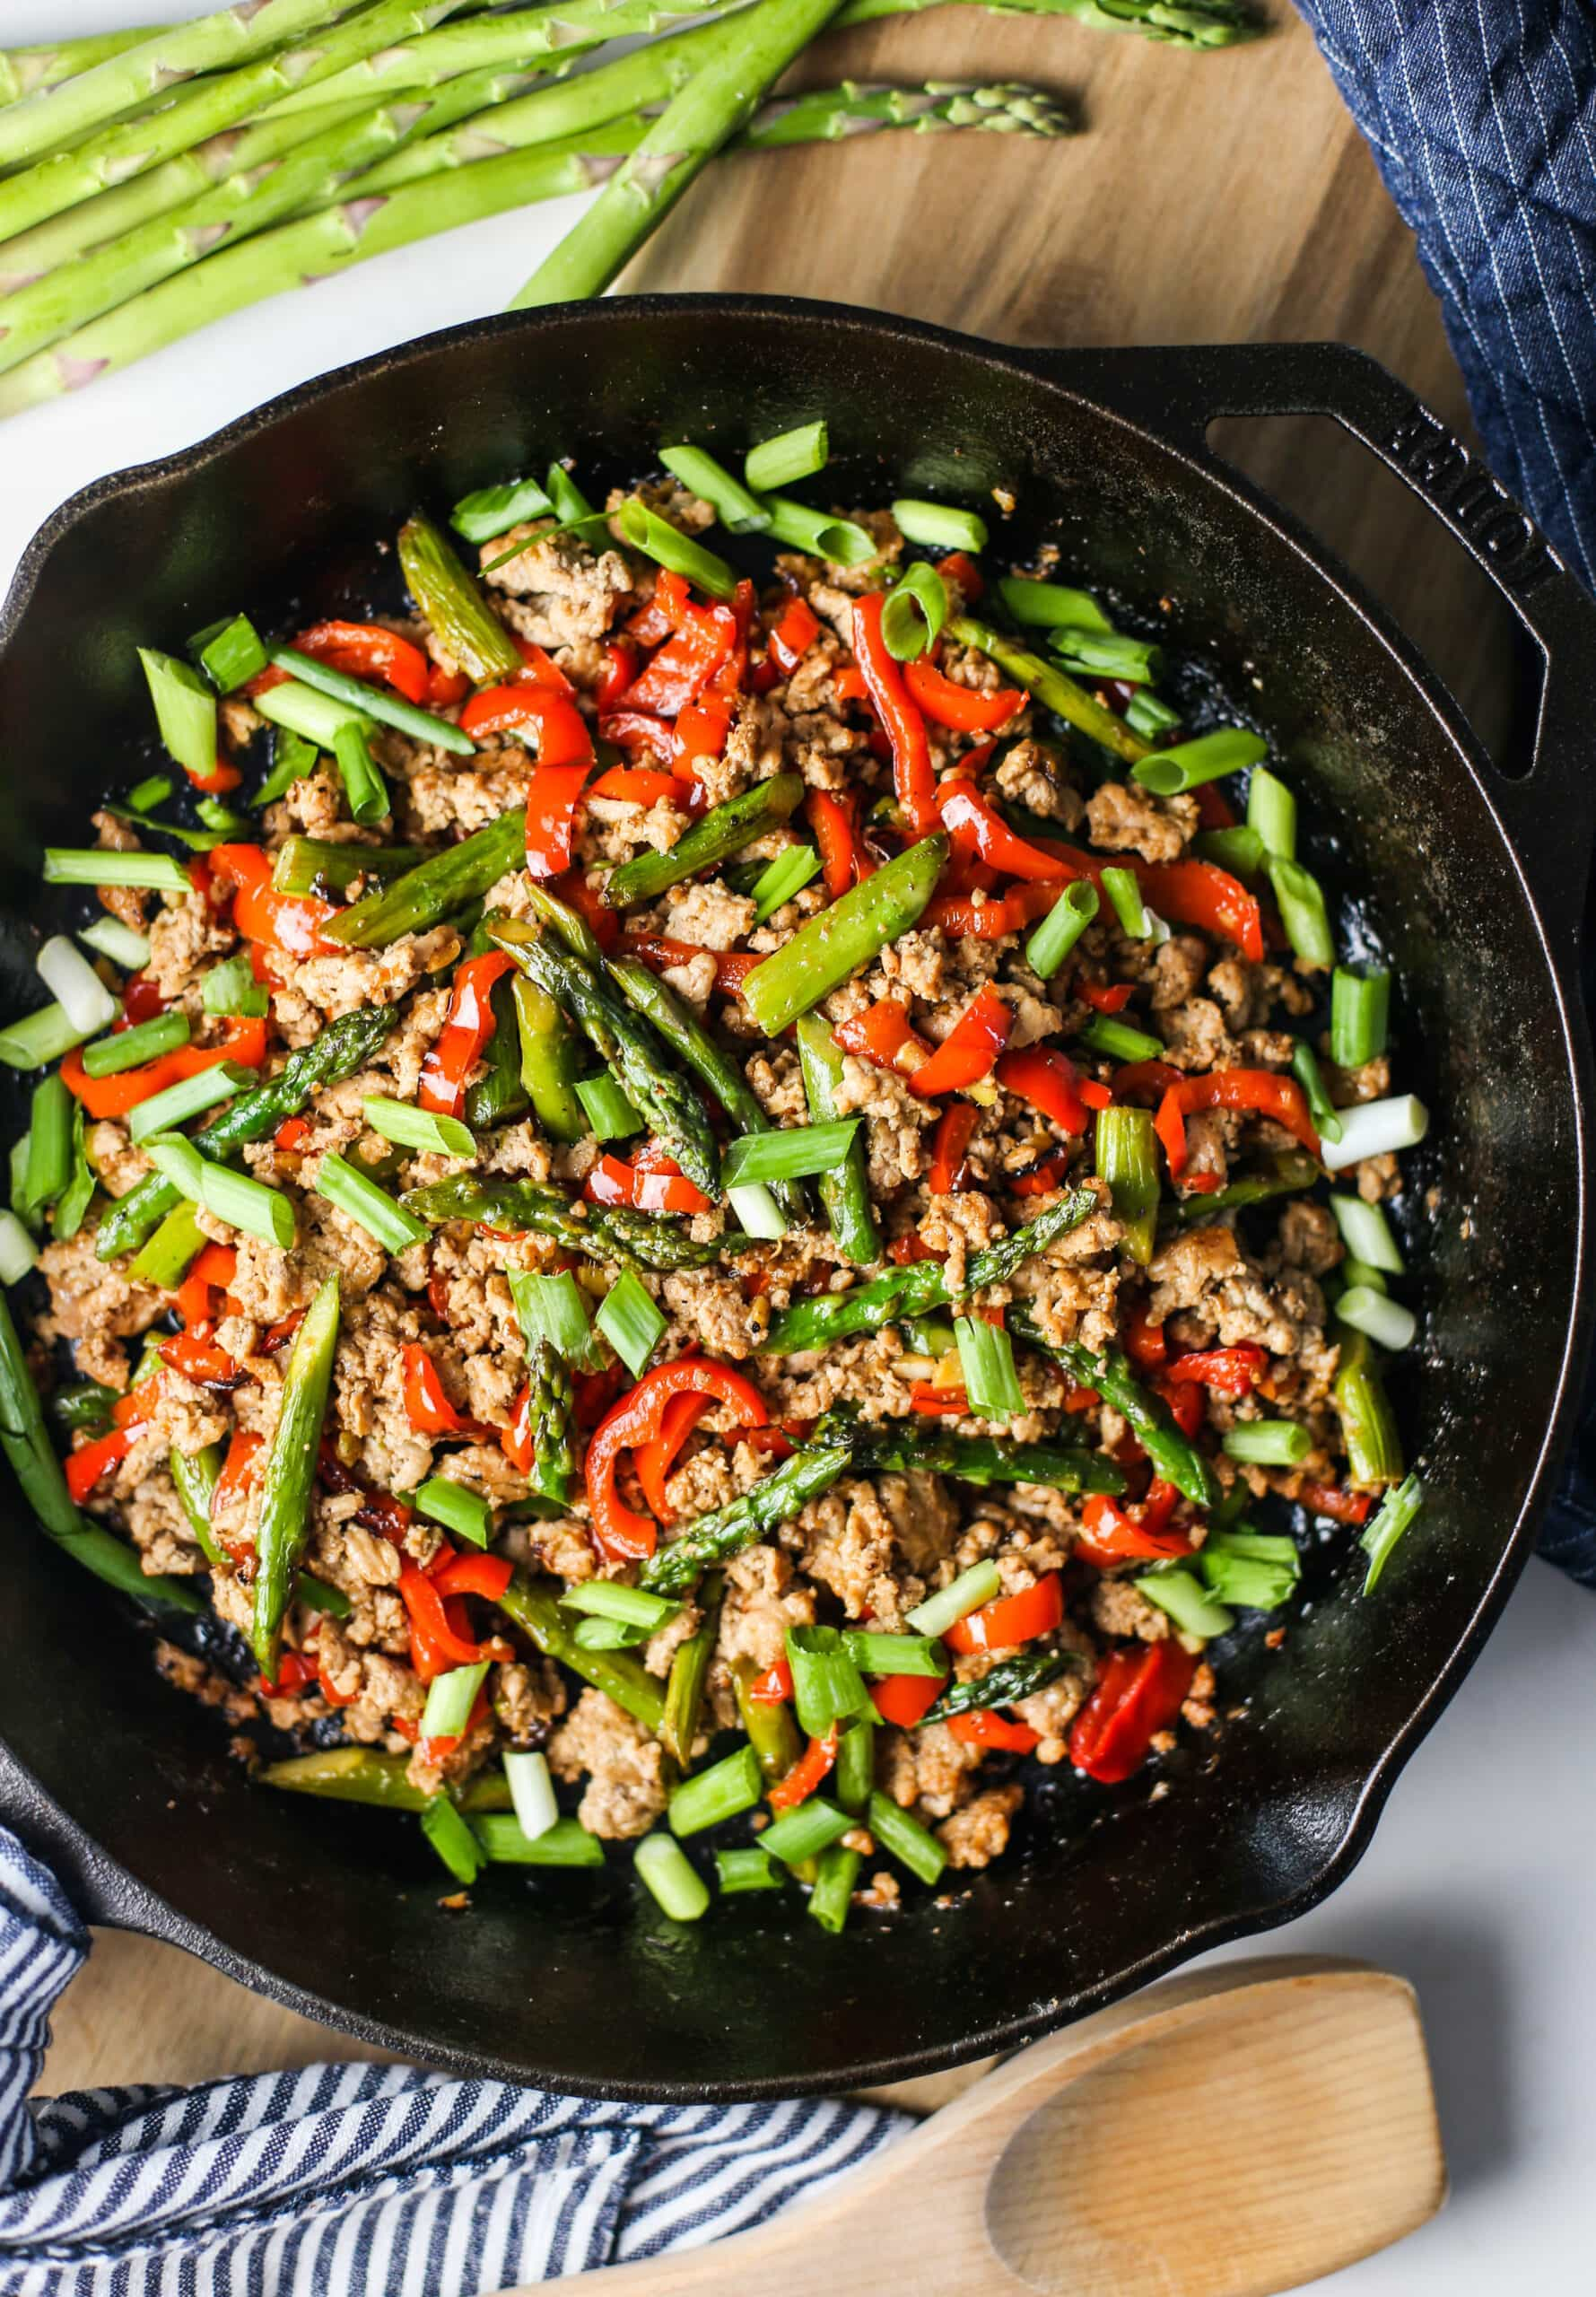 Overhead view of cast iron skillet containing a ground turkey and asparagus stir-fry.